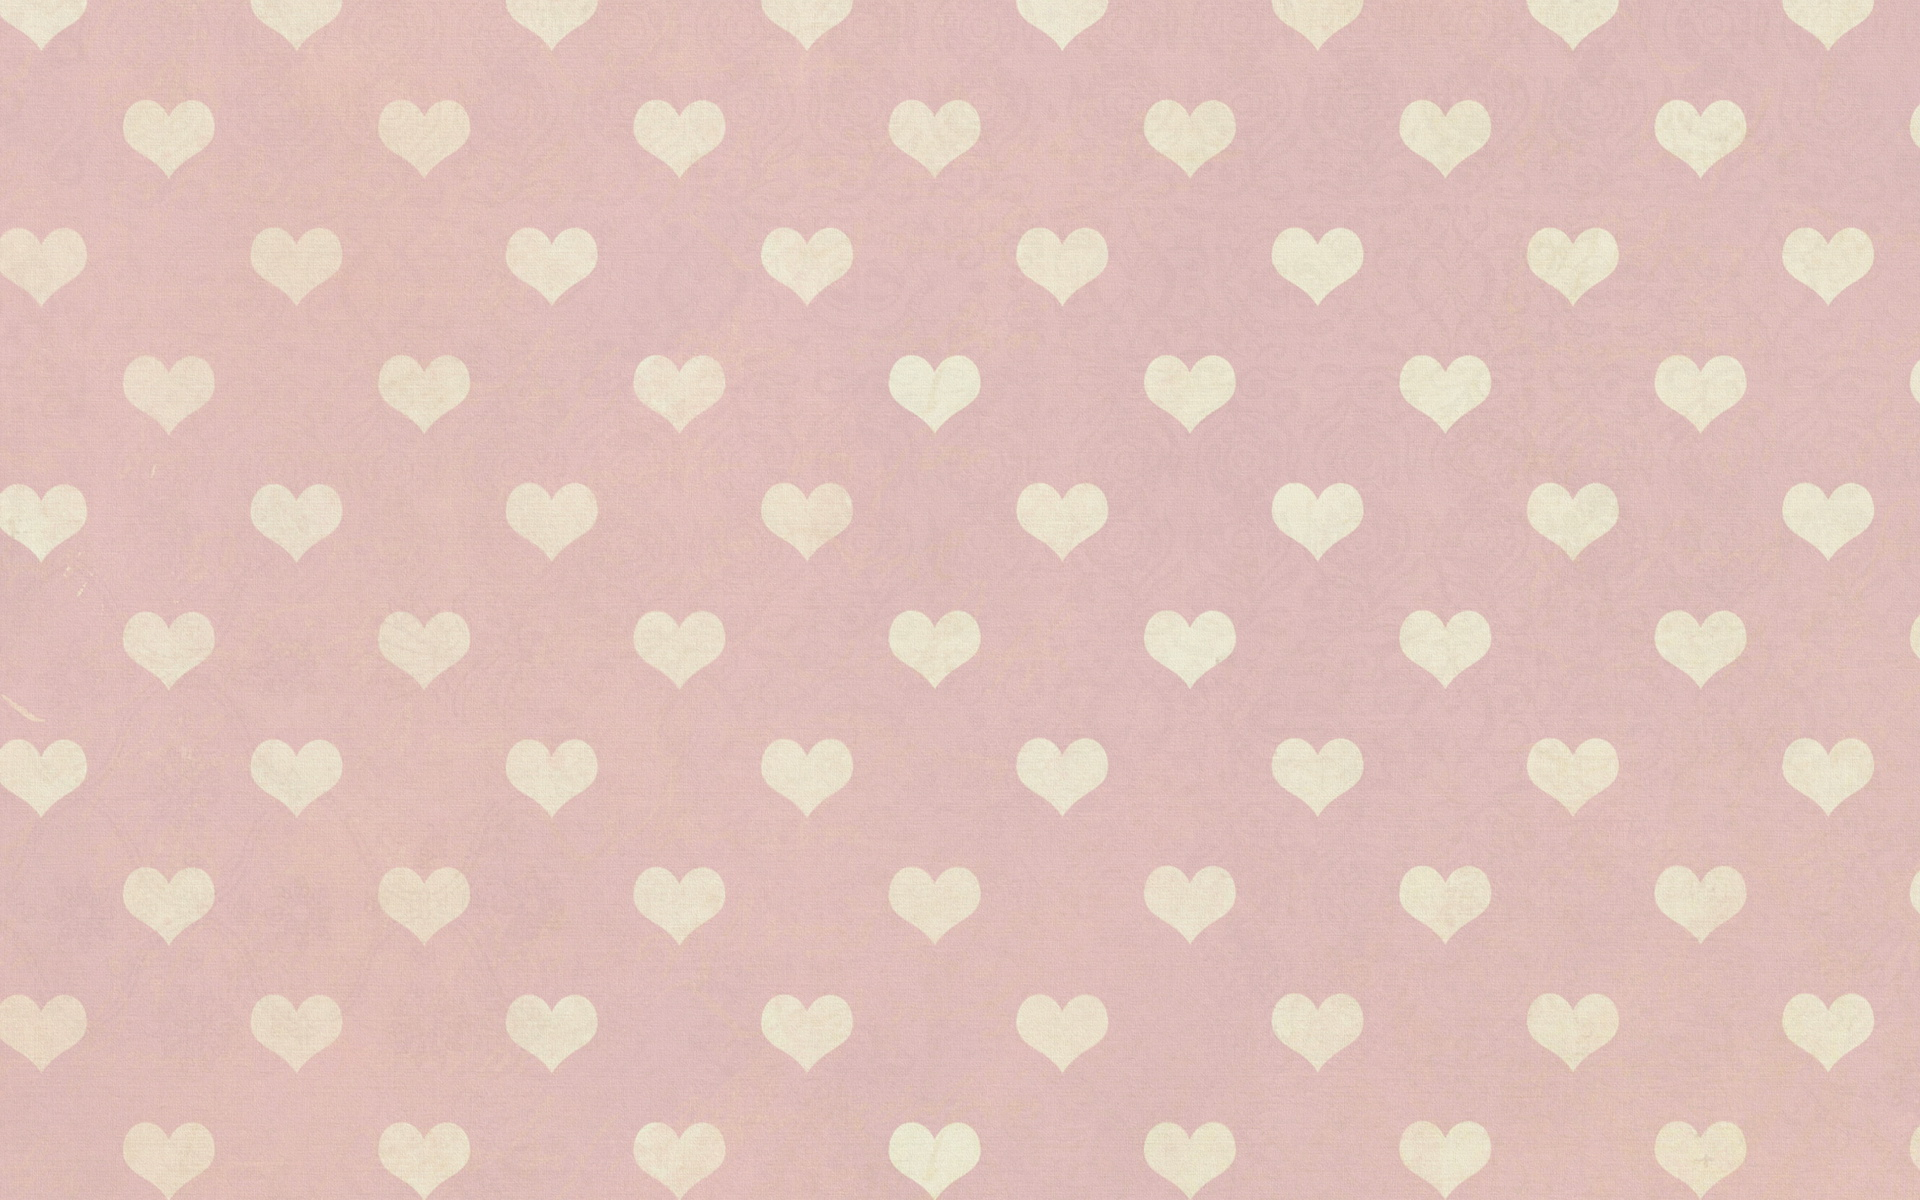 Cute Baby Girl Wallpapers Free Free Heart Pattern Wallpaper 41521 1920x1200 Px